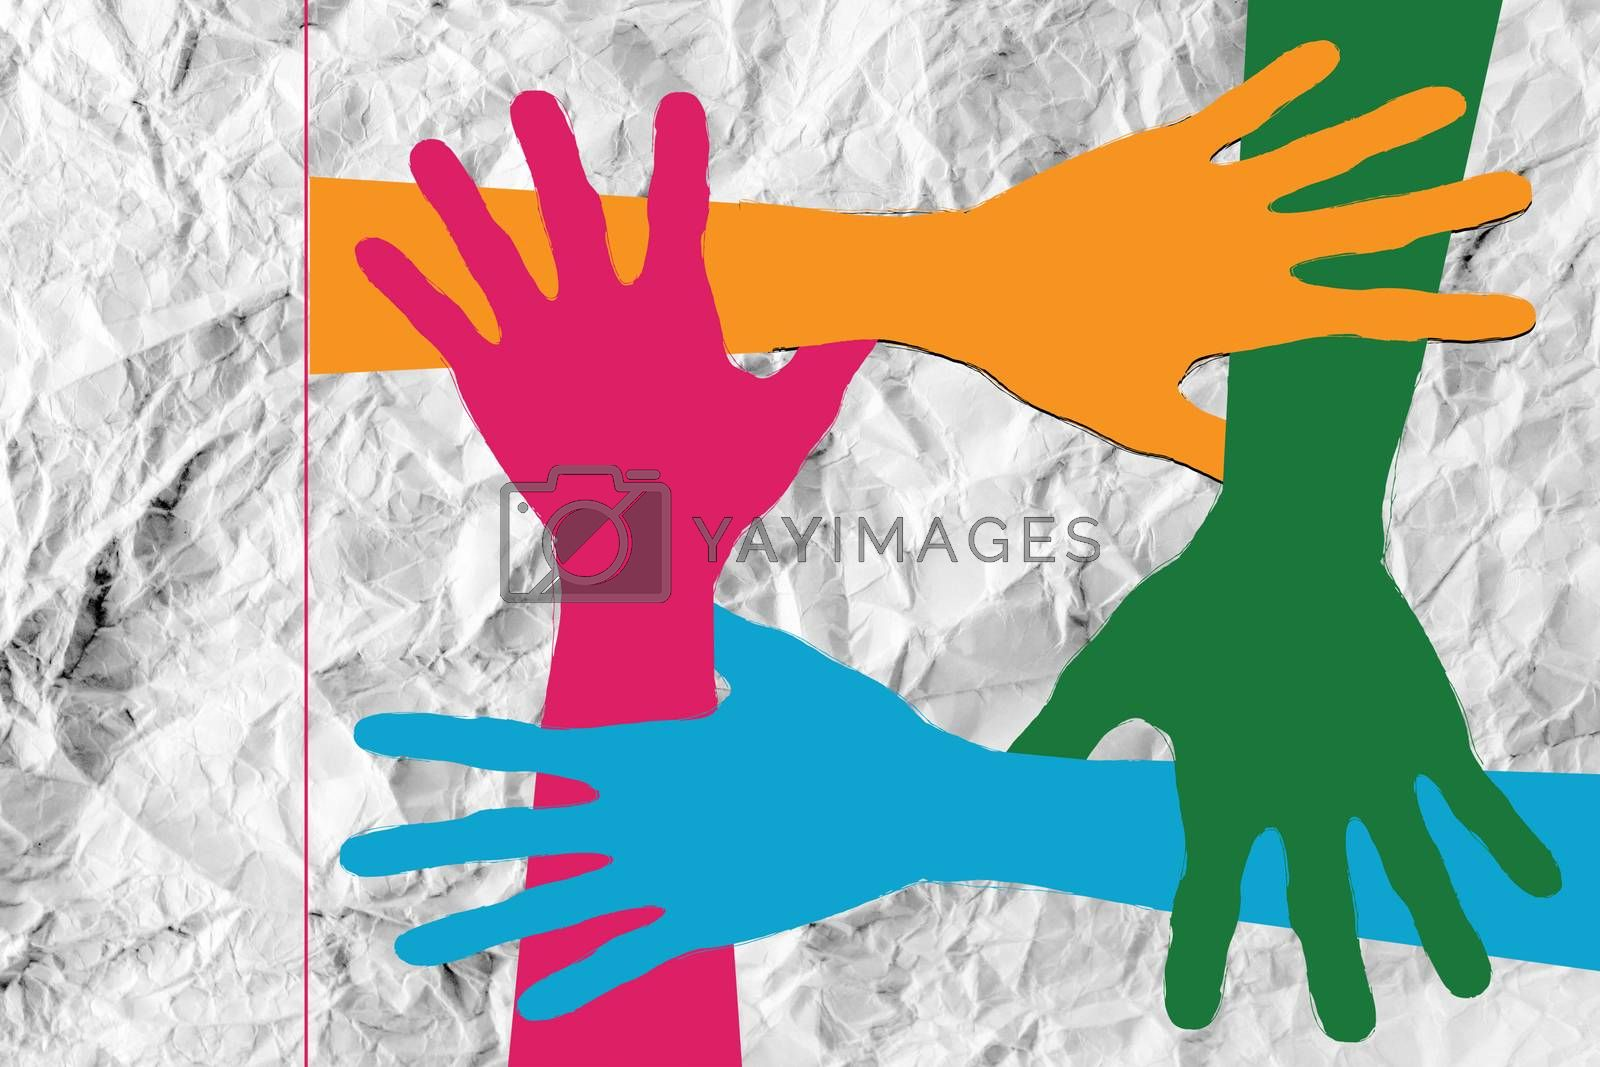 colorful silhouette hands background design by kiddaikiddee